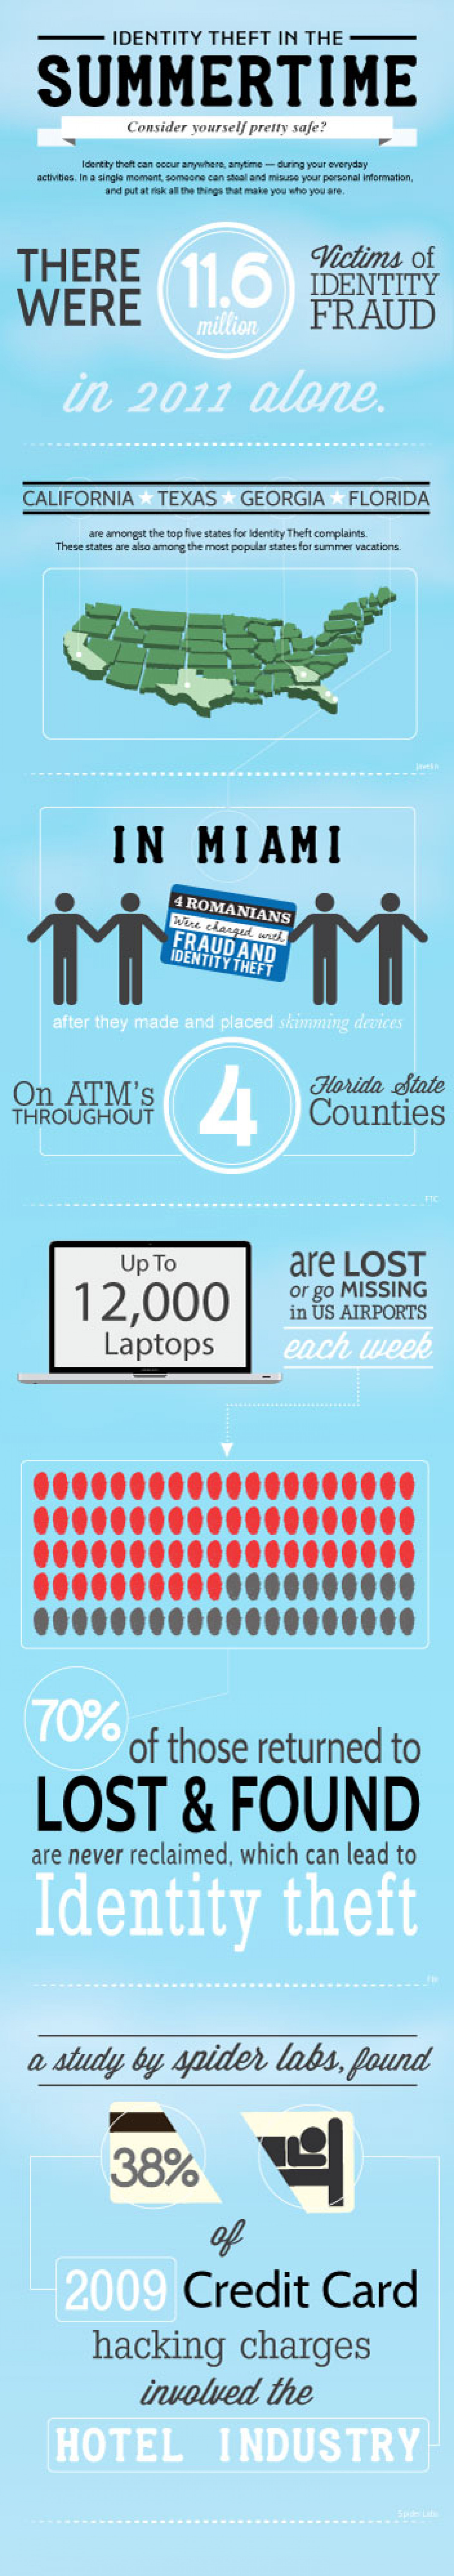 Identity Theft in the Summertime Infographic